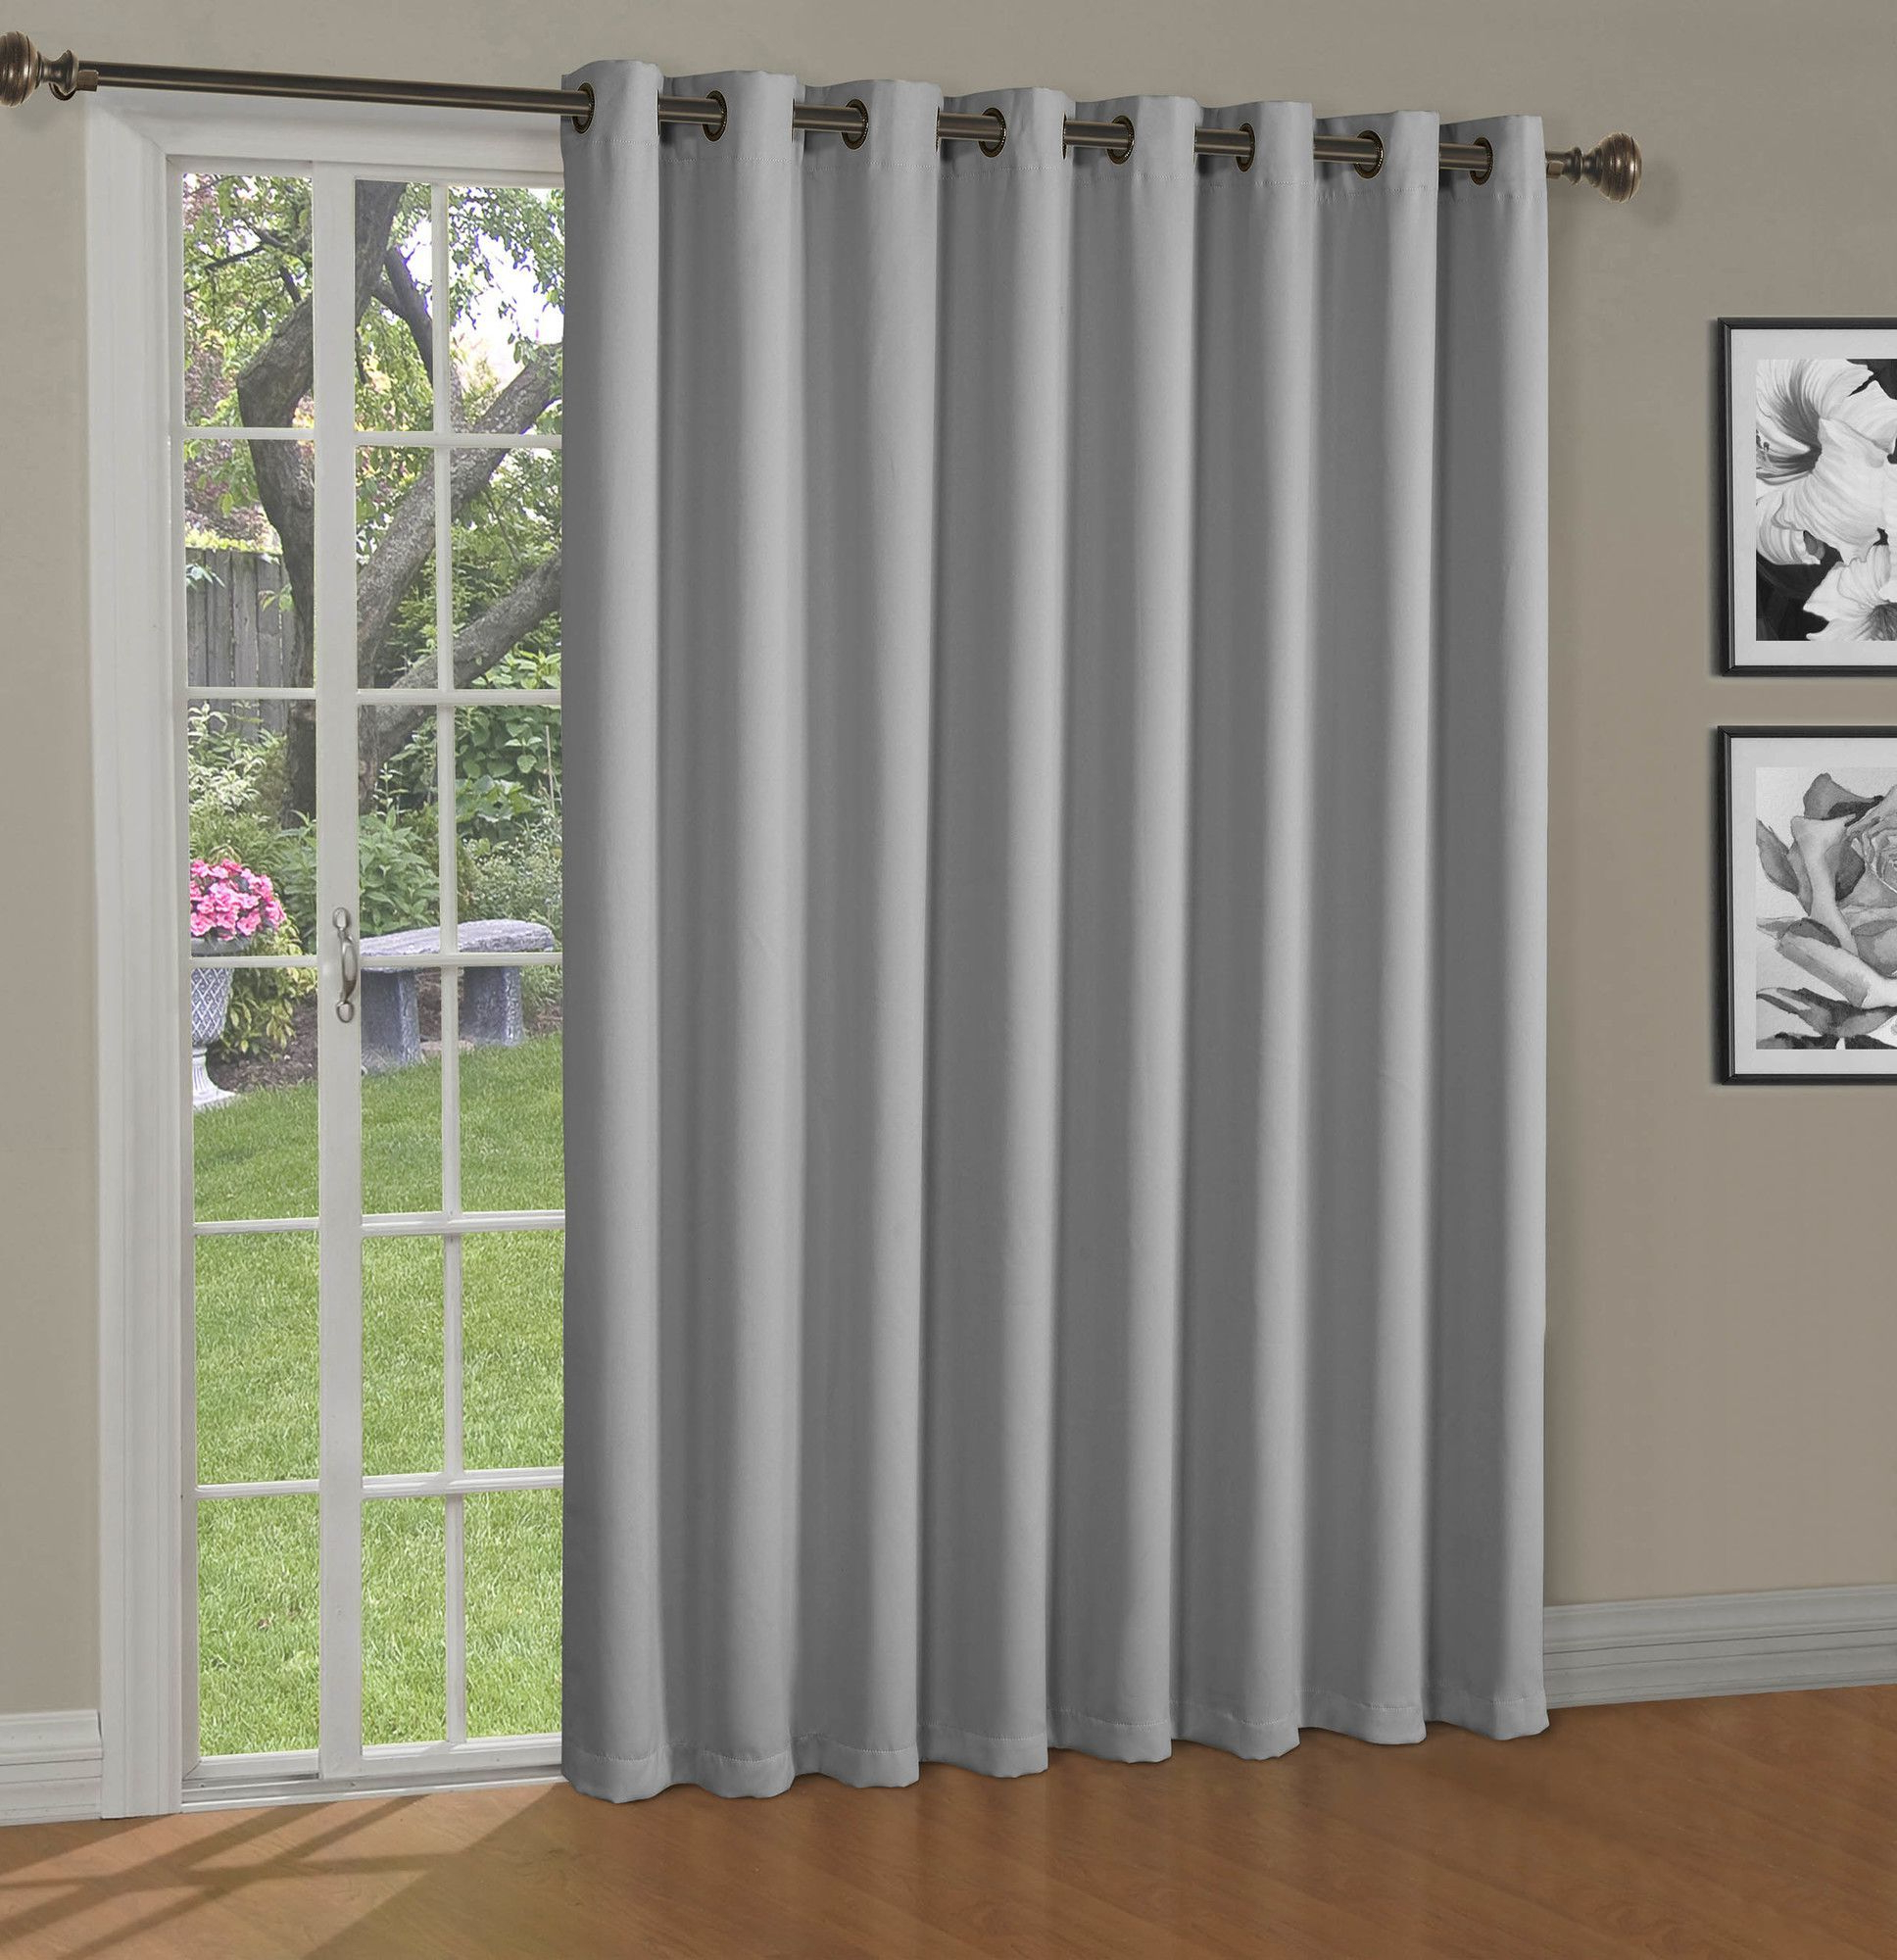 Maya Blackout Thermal Patio Door Extra Wide Grommet Curtain With Regard To 2020 Grommet Blackout Patio Door Window Curtain Panels (Gallery 14 of 20)